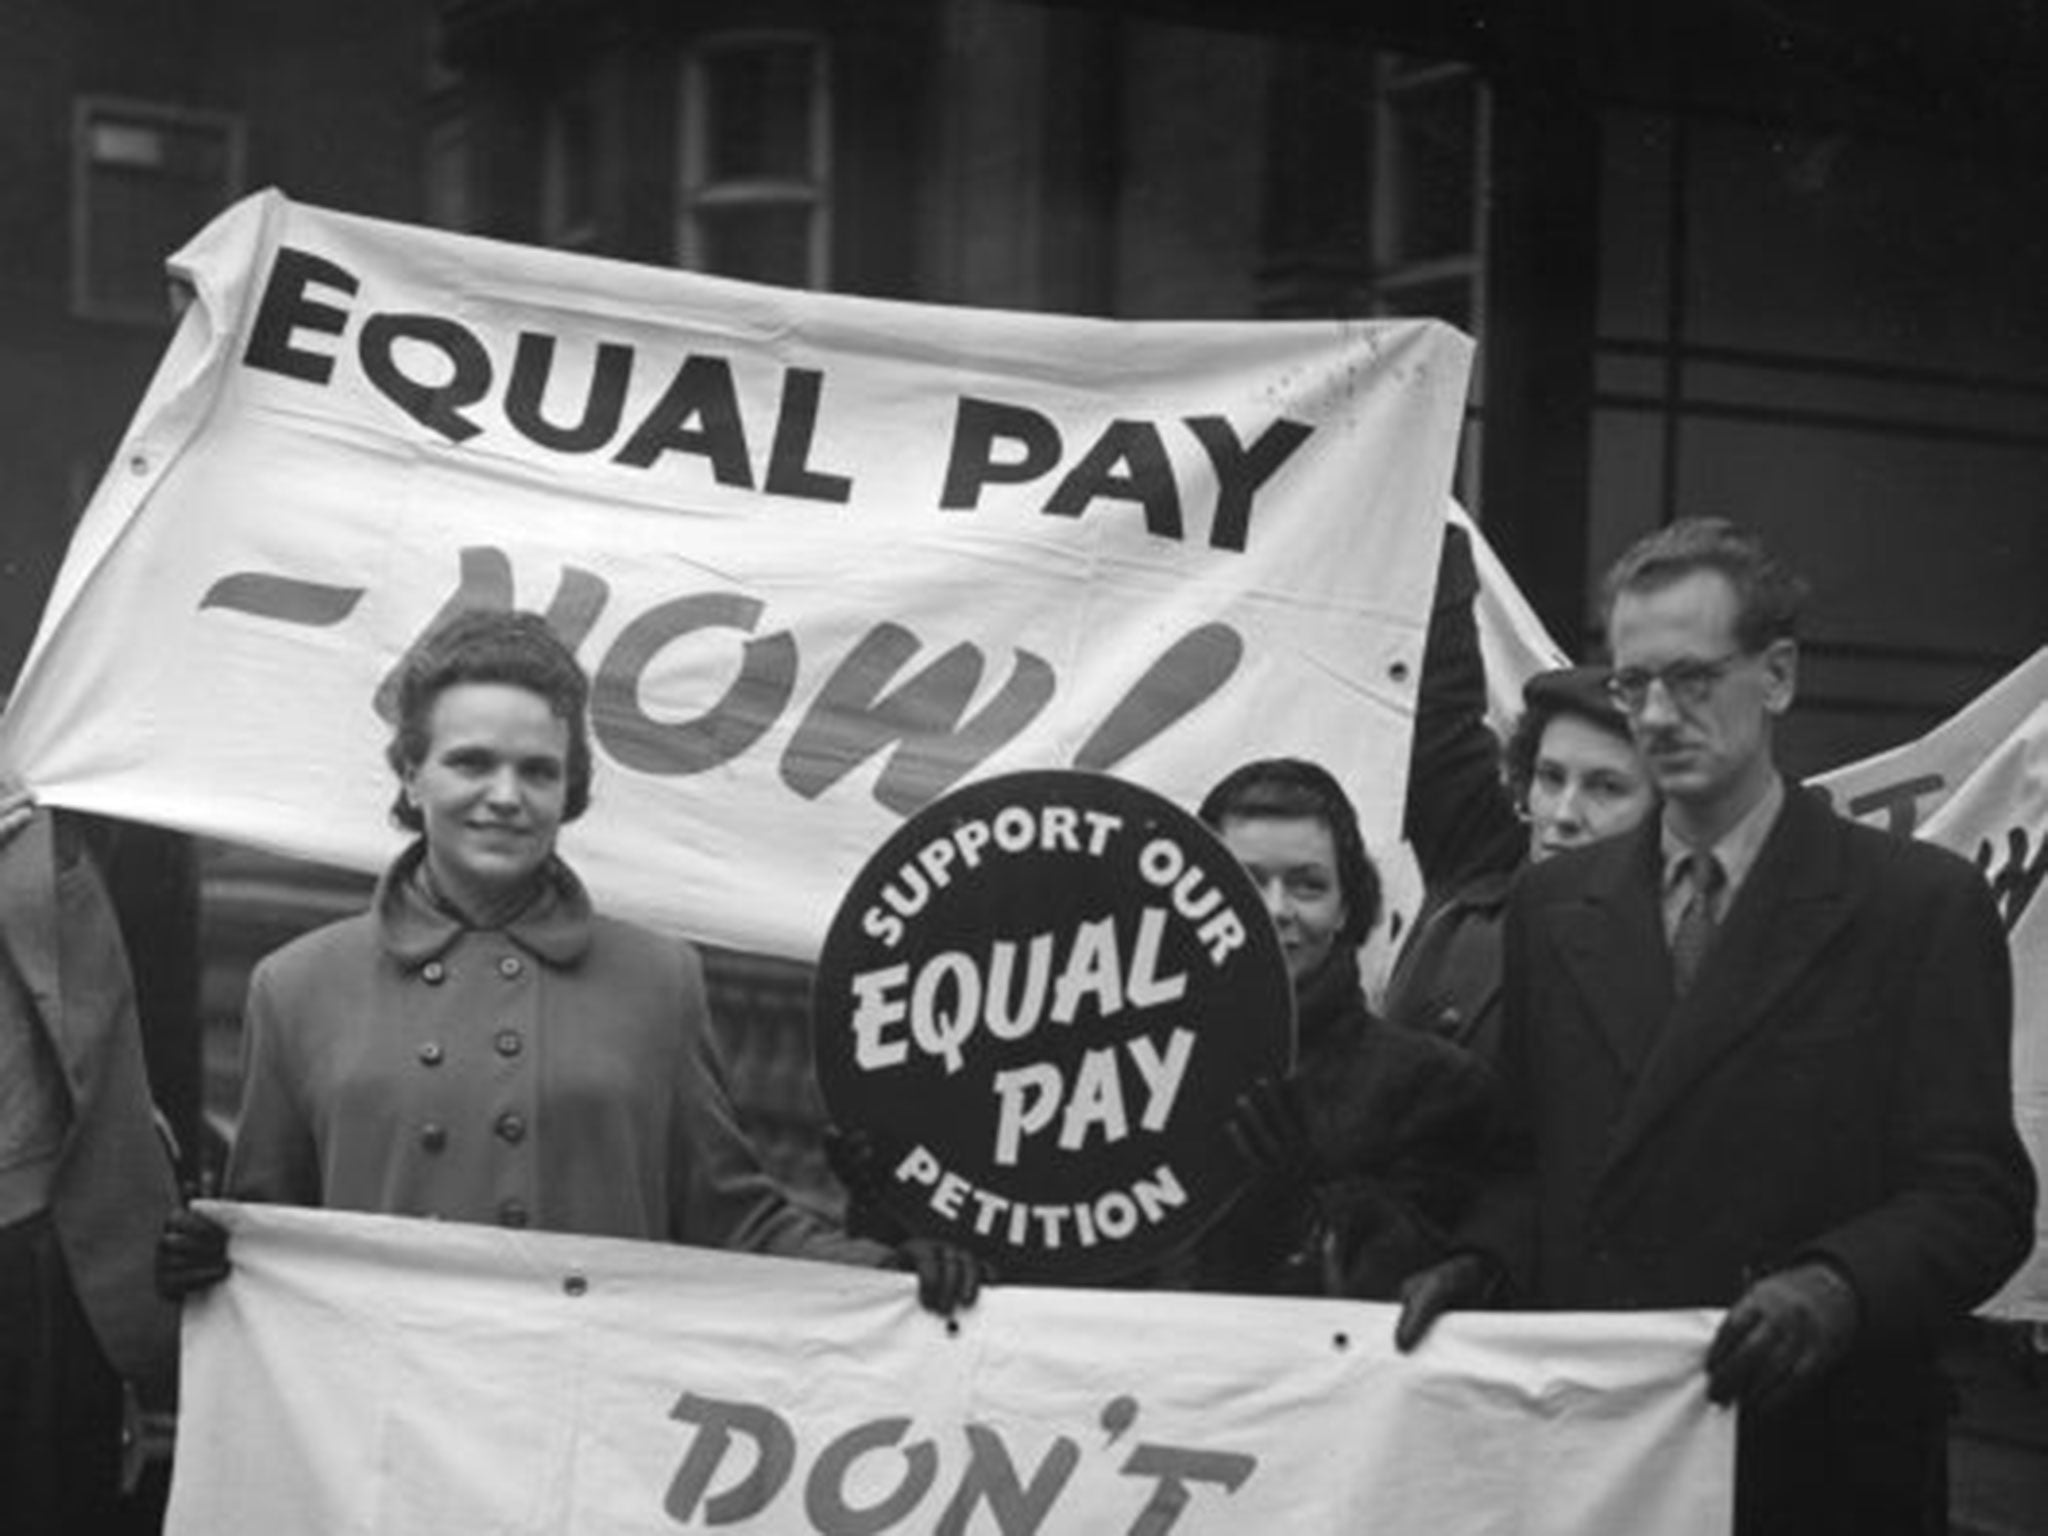 equal pay act The equal pay act of 1963 was a law amending the fair labor standards act  it was signed into law on june 10, 1963 by john f kennedy as part of his new frontier program.